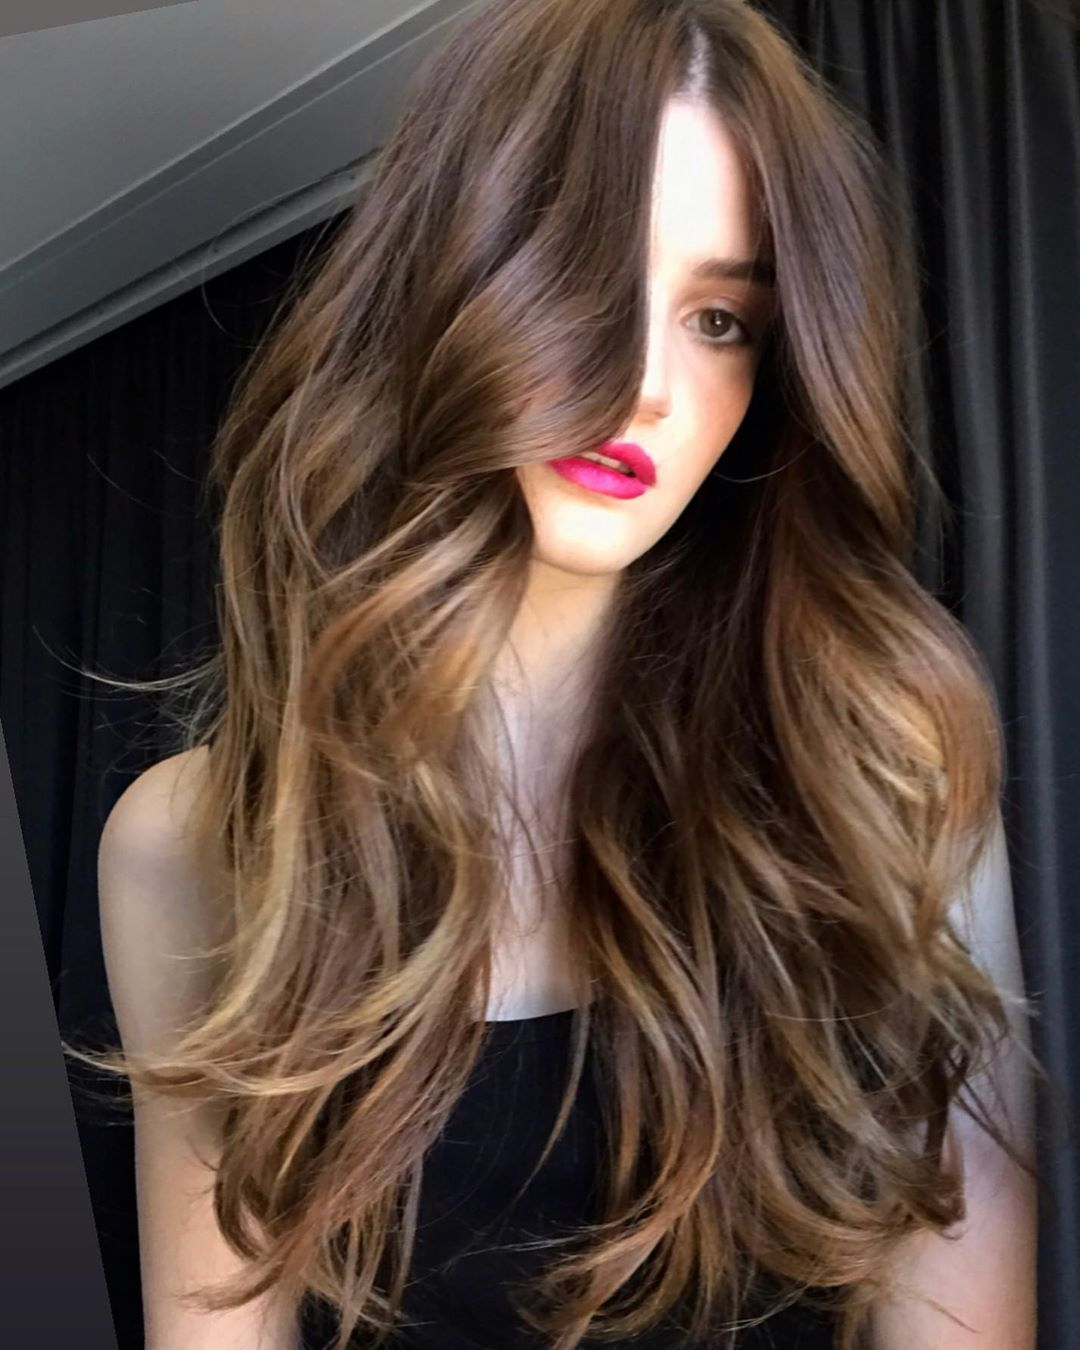 Chelseahaircutters On Instagram Modern Day Snowwhite Body And Bounce Pjthomsen For Dysonhair Road Show Perth U Natural Wavy Hair Hair Hair Styles